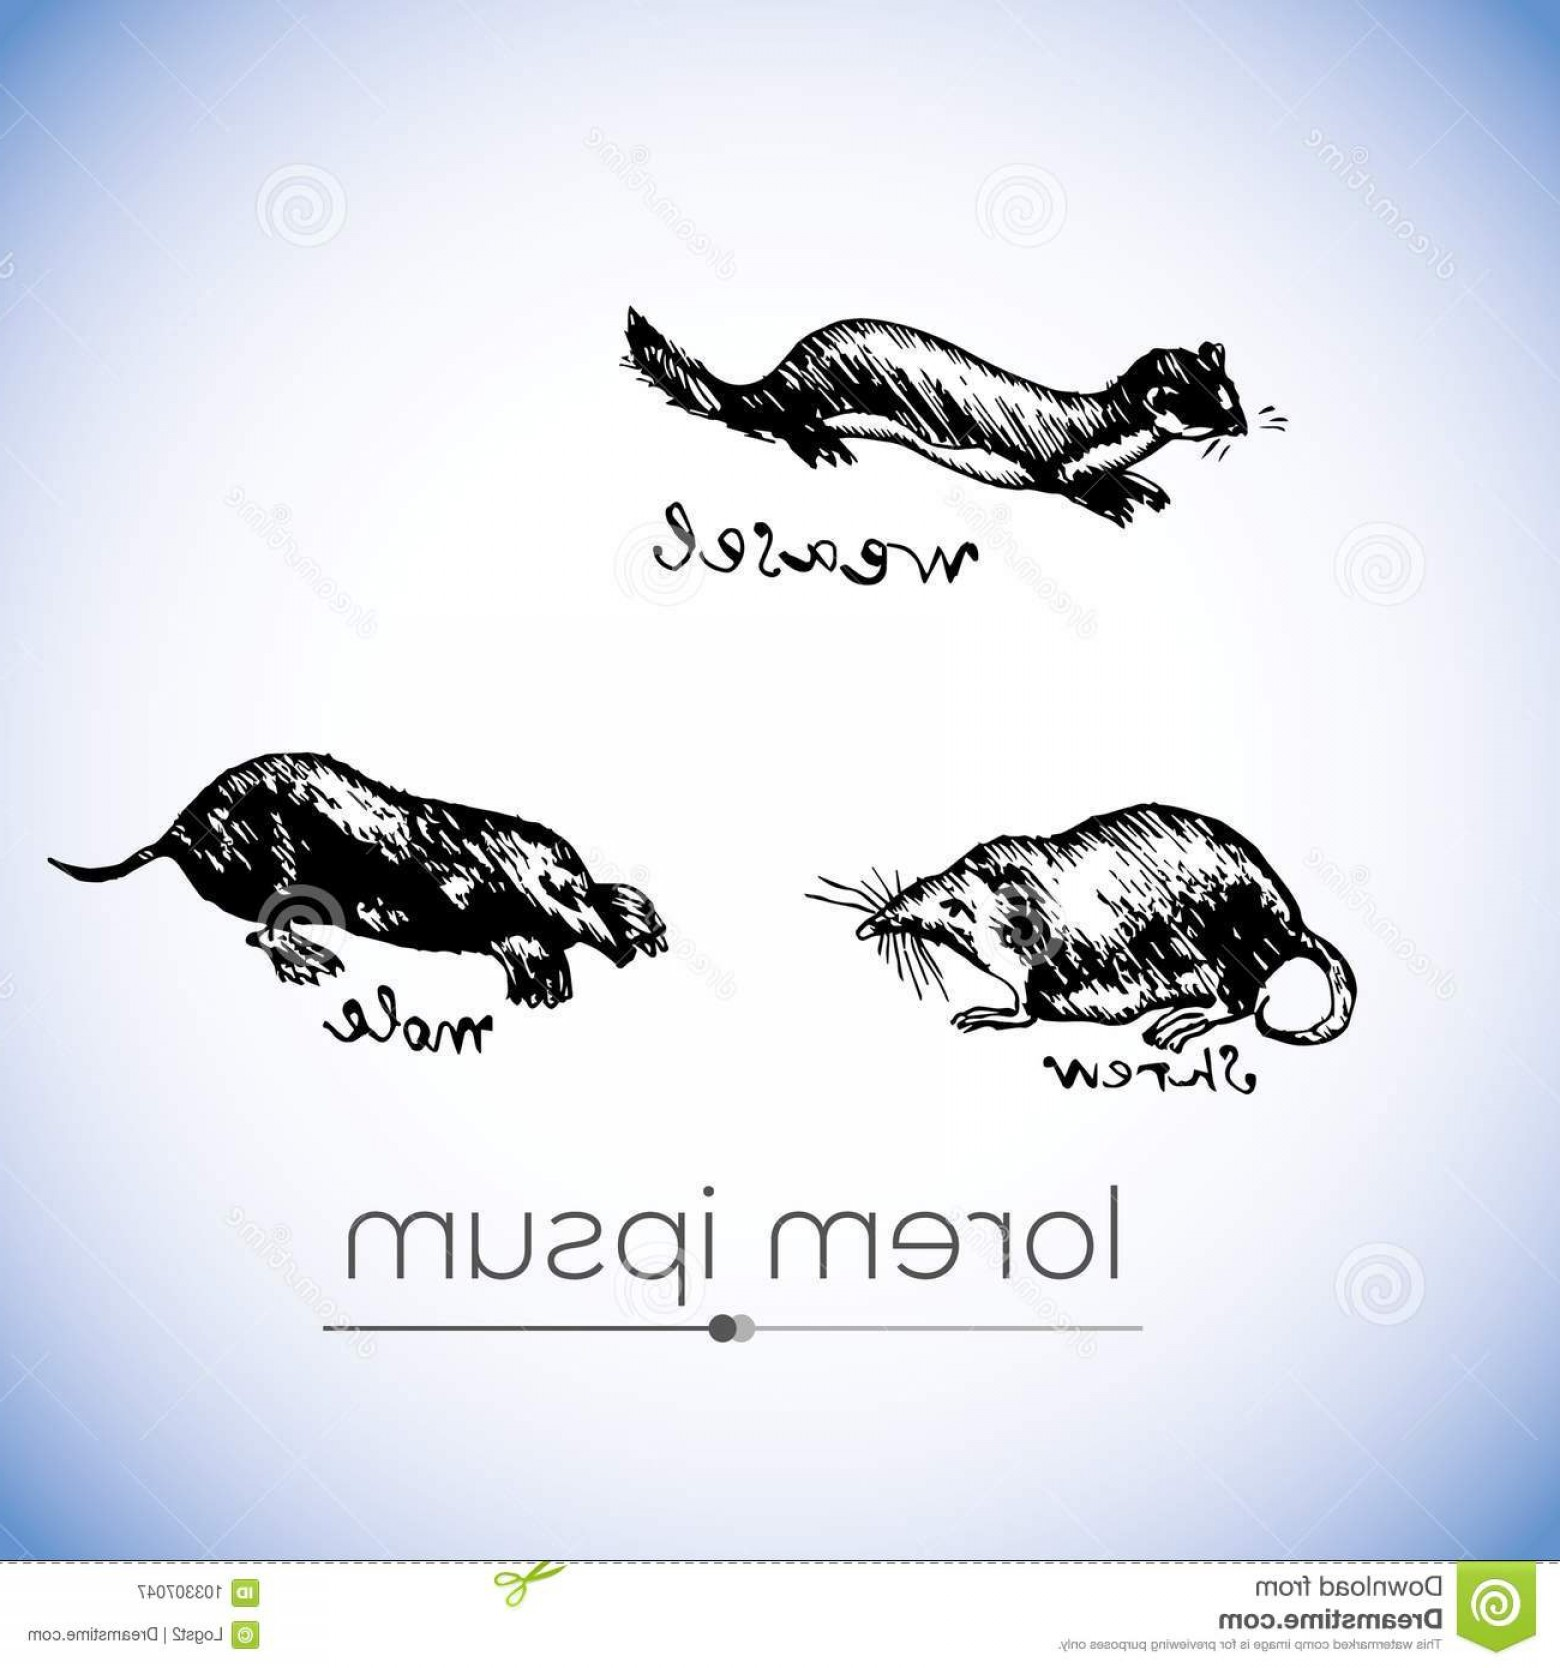 1560x1668 Weasel Shrew Mole Vector Hand Drawn Illustration Weasel Shrew Mole